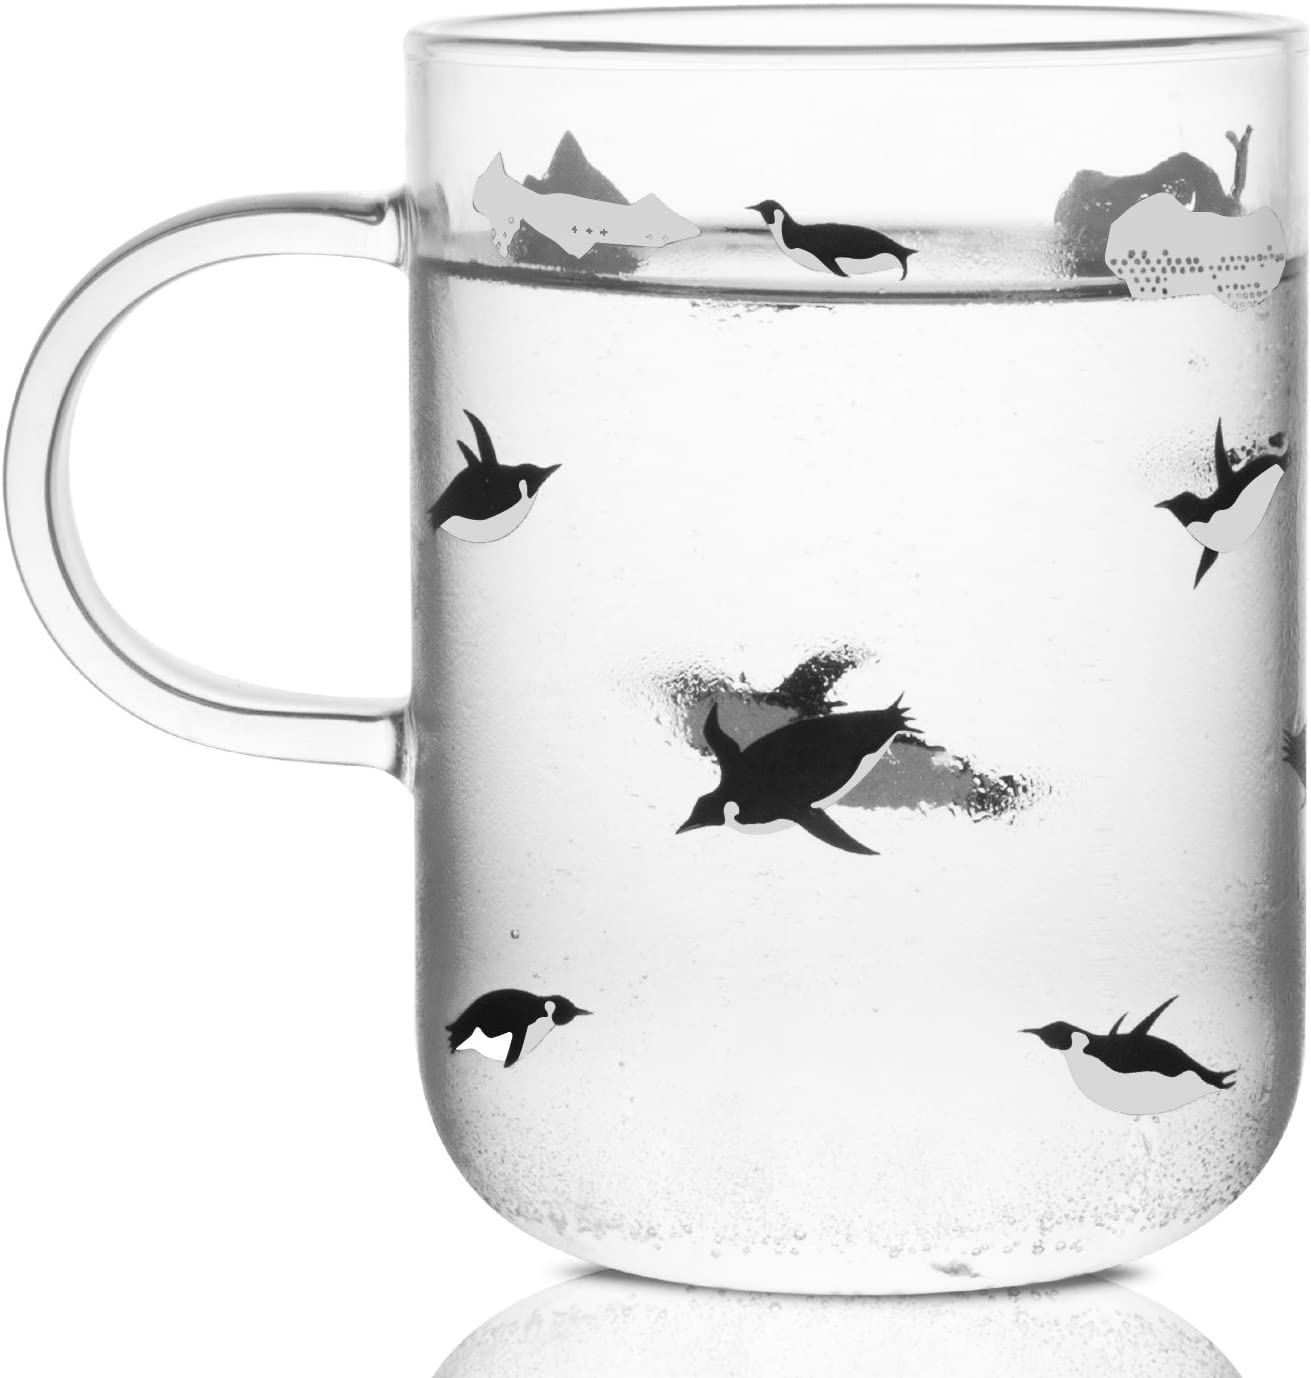 ELITEA Penguin Glass Coffee Mug with Handle Clear Cute Mugs Cup for Drinking Penguin Gift 16.3oz